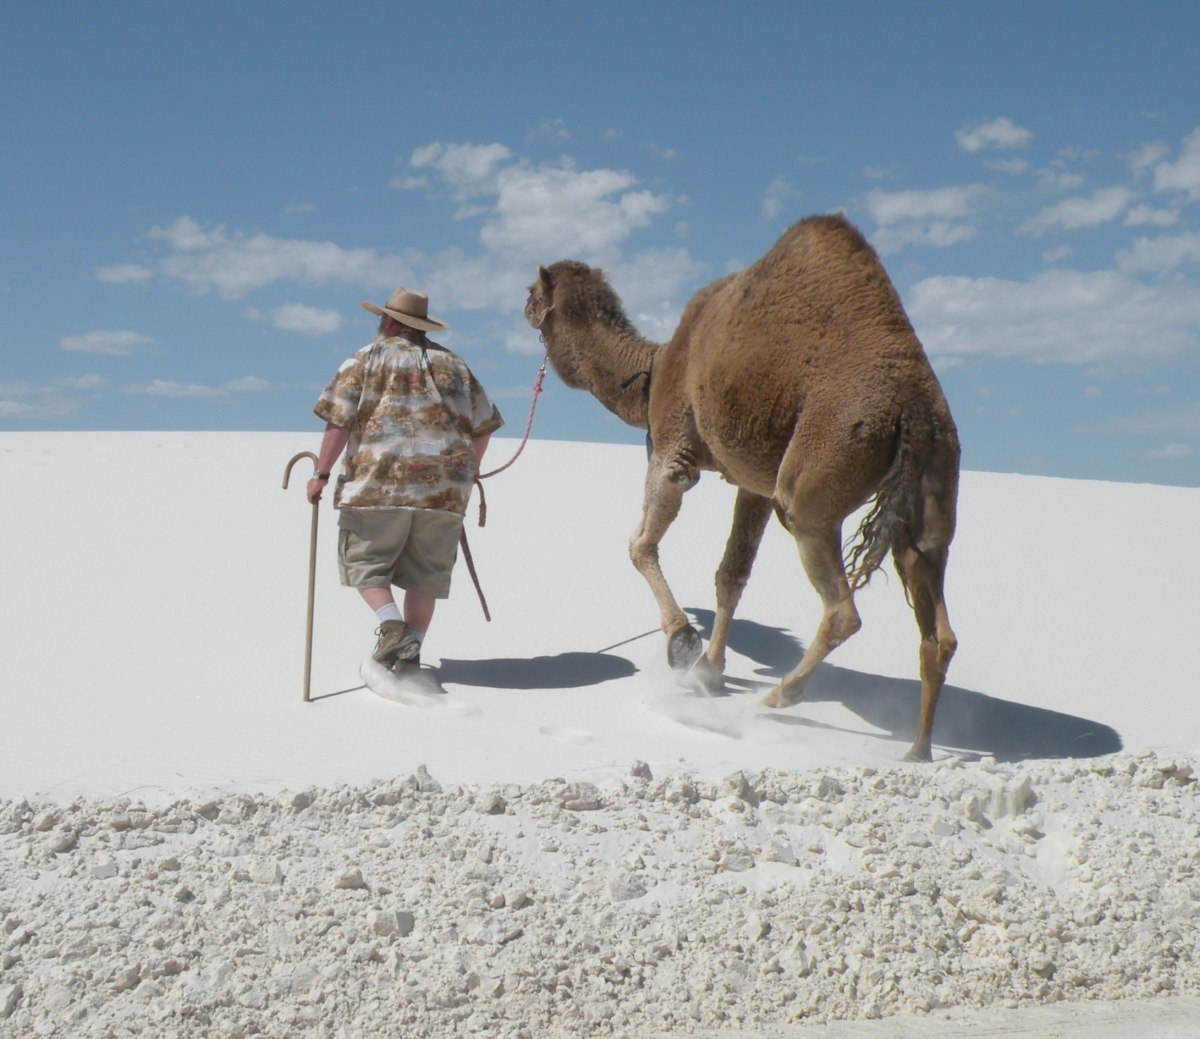 Matilda the Camel and her owner take a walk over the white gypsum dunes.